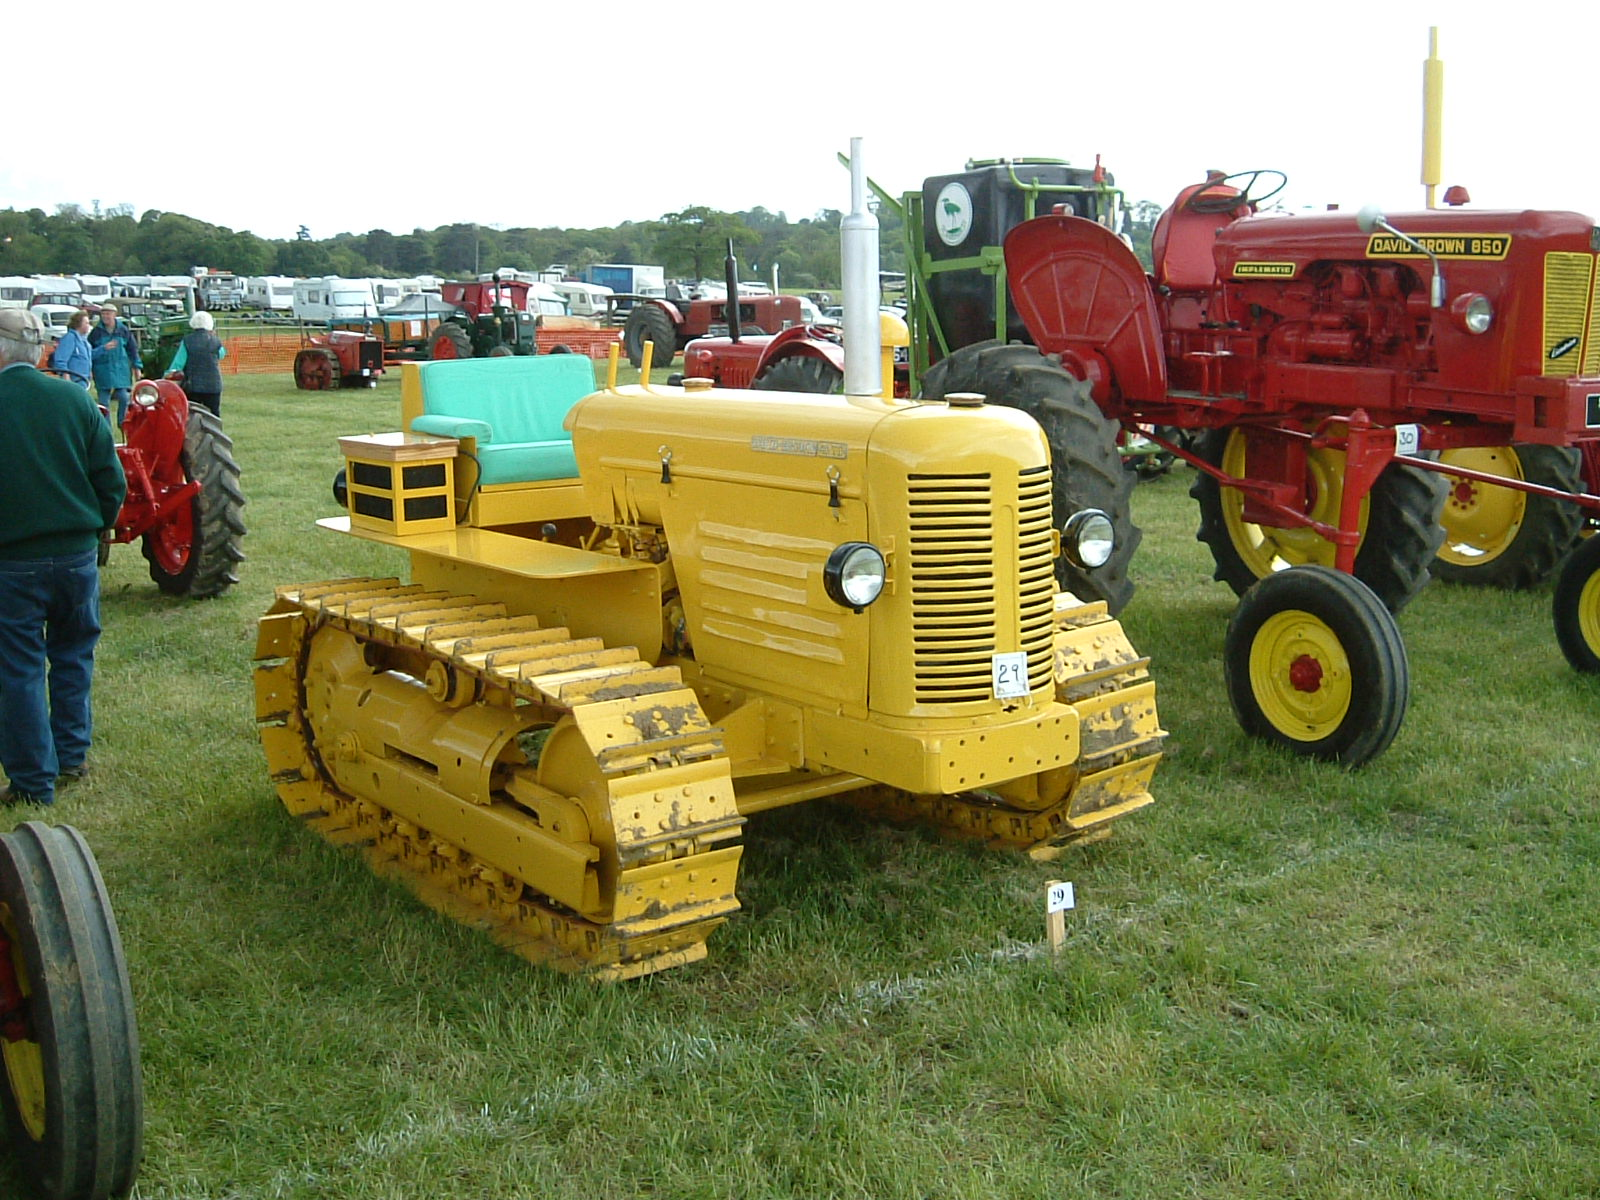 David Brown   Tractor & Construction Plant Wiki   FANDOM powered by Wikia